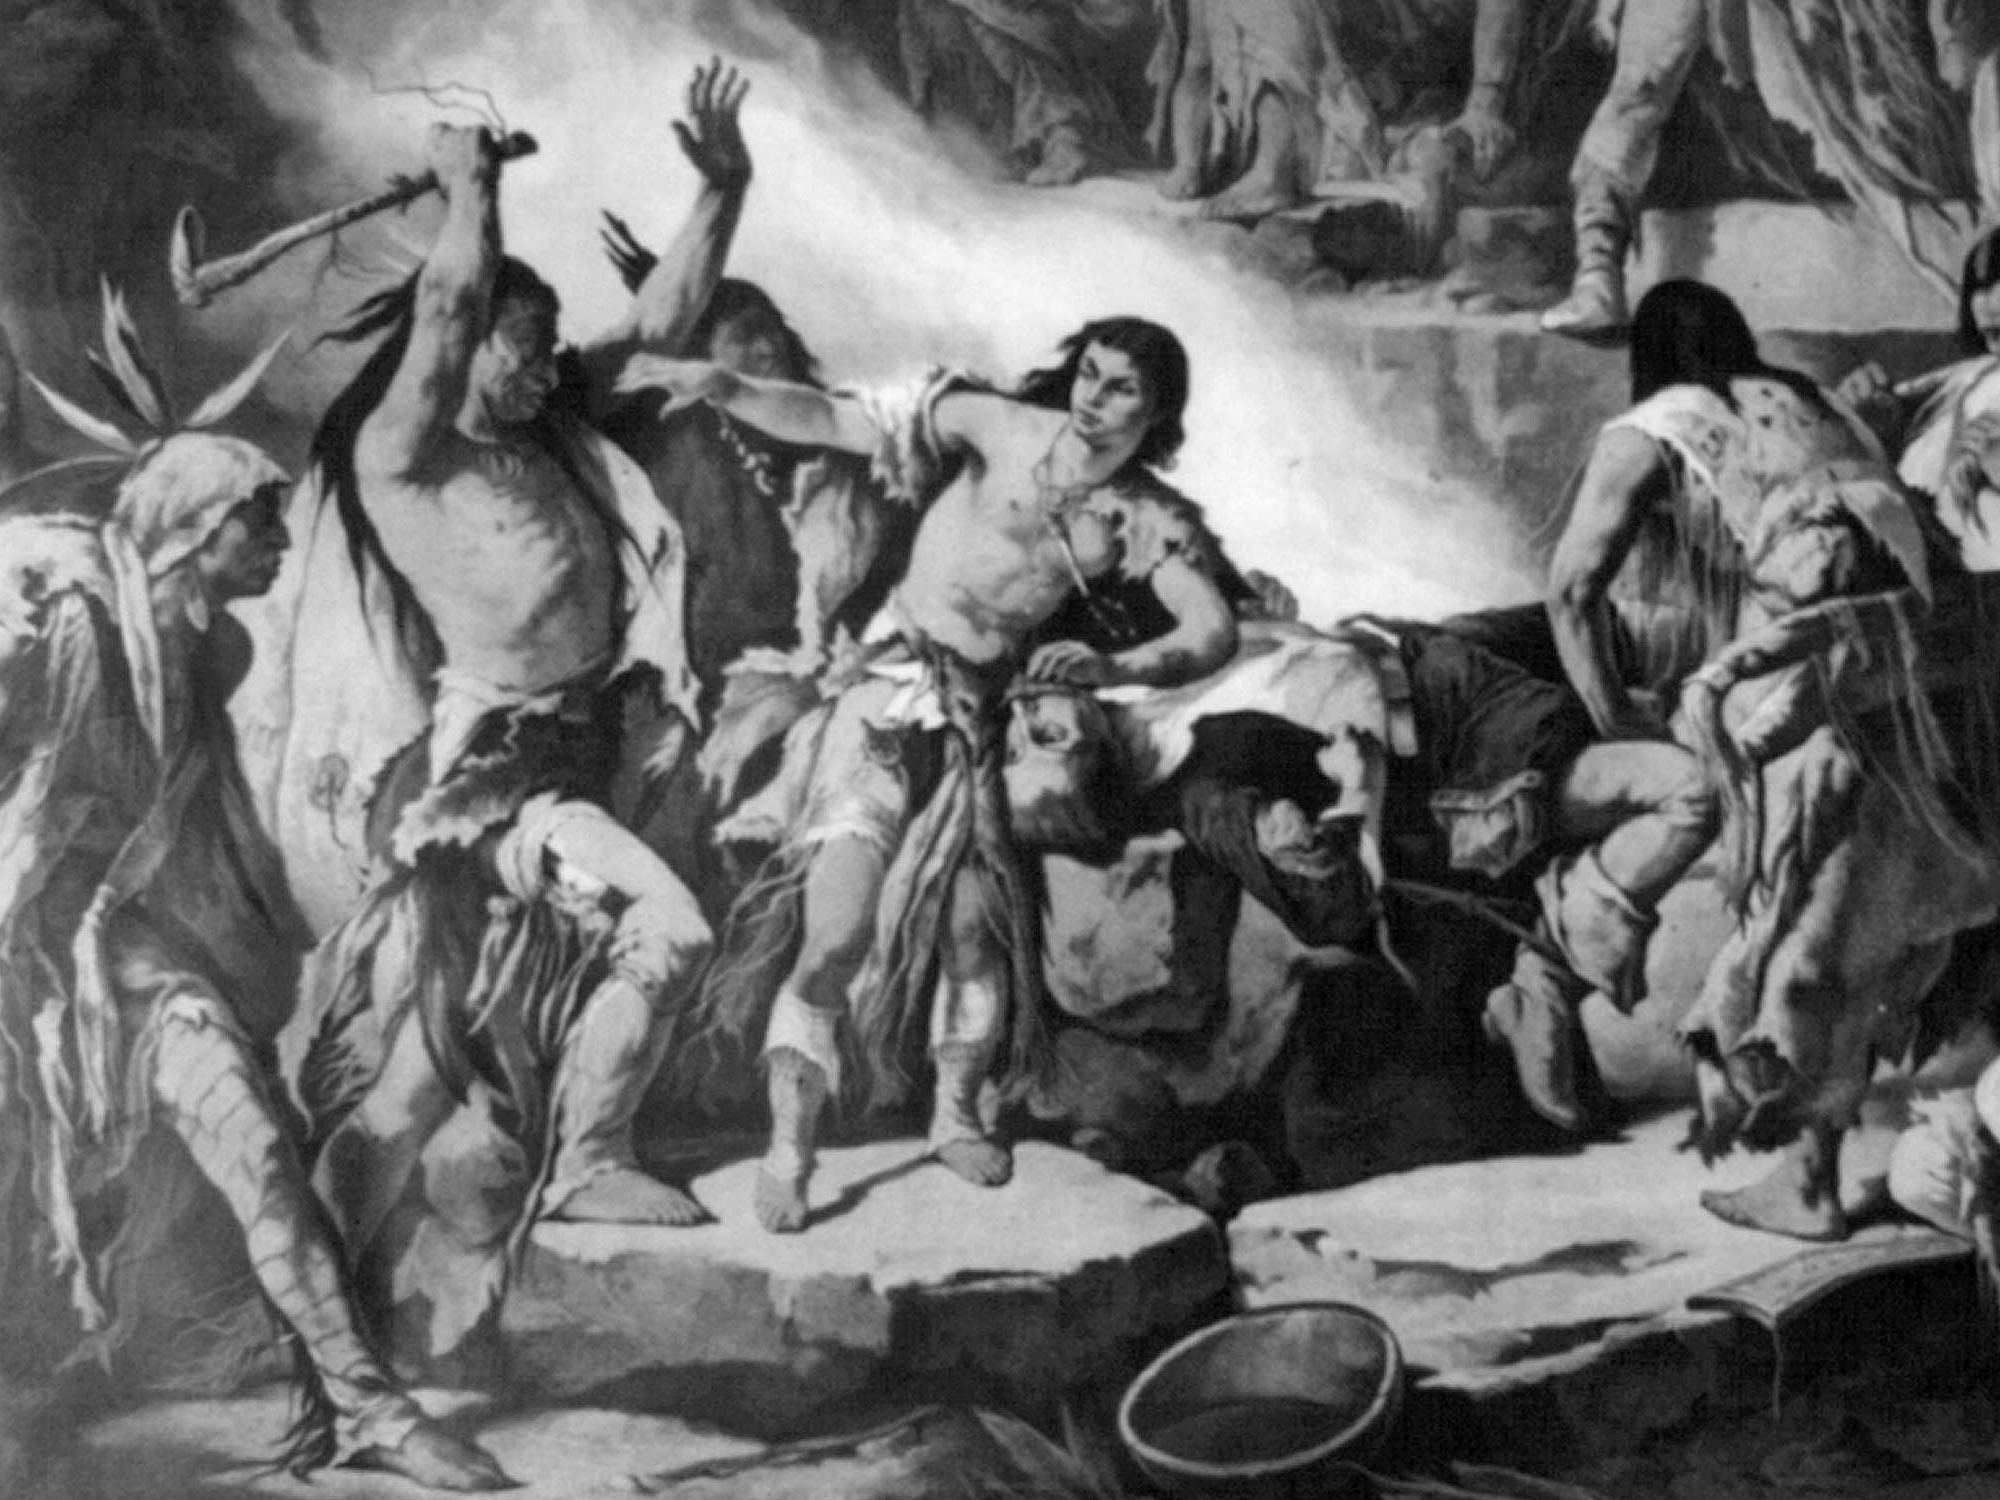 An illustration of Pocahontas saving the life of John Smith